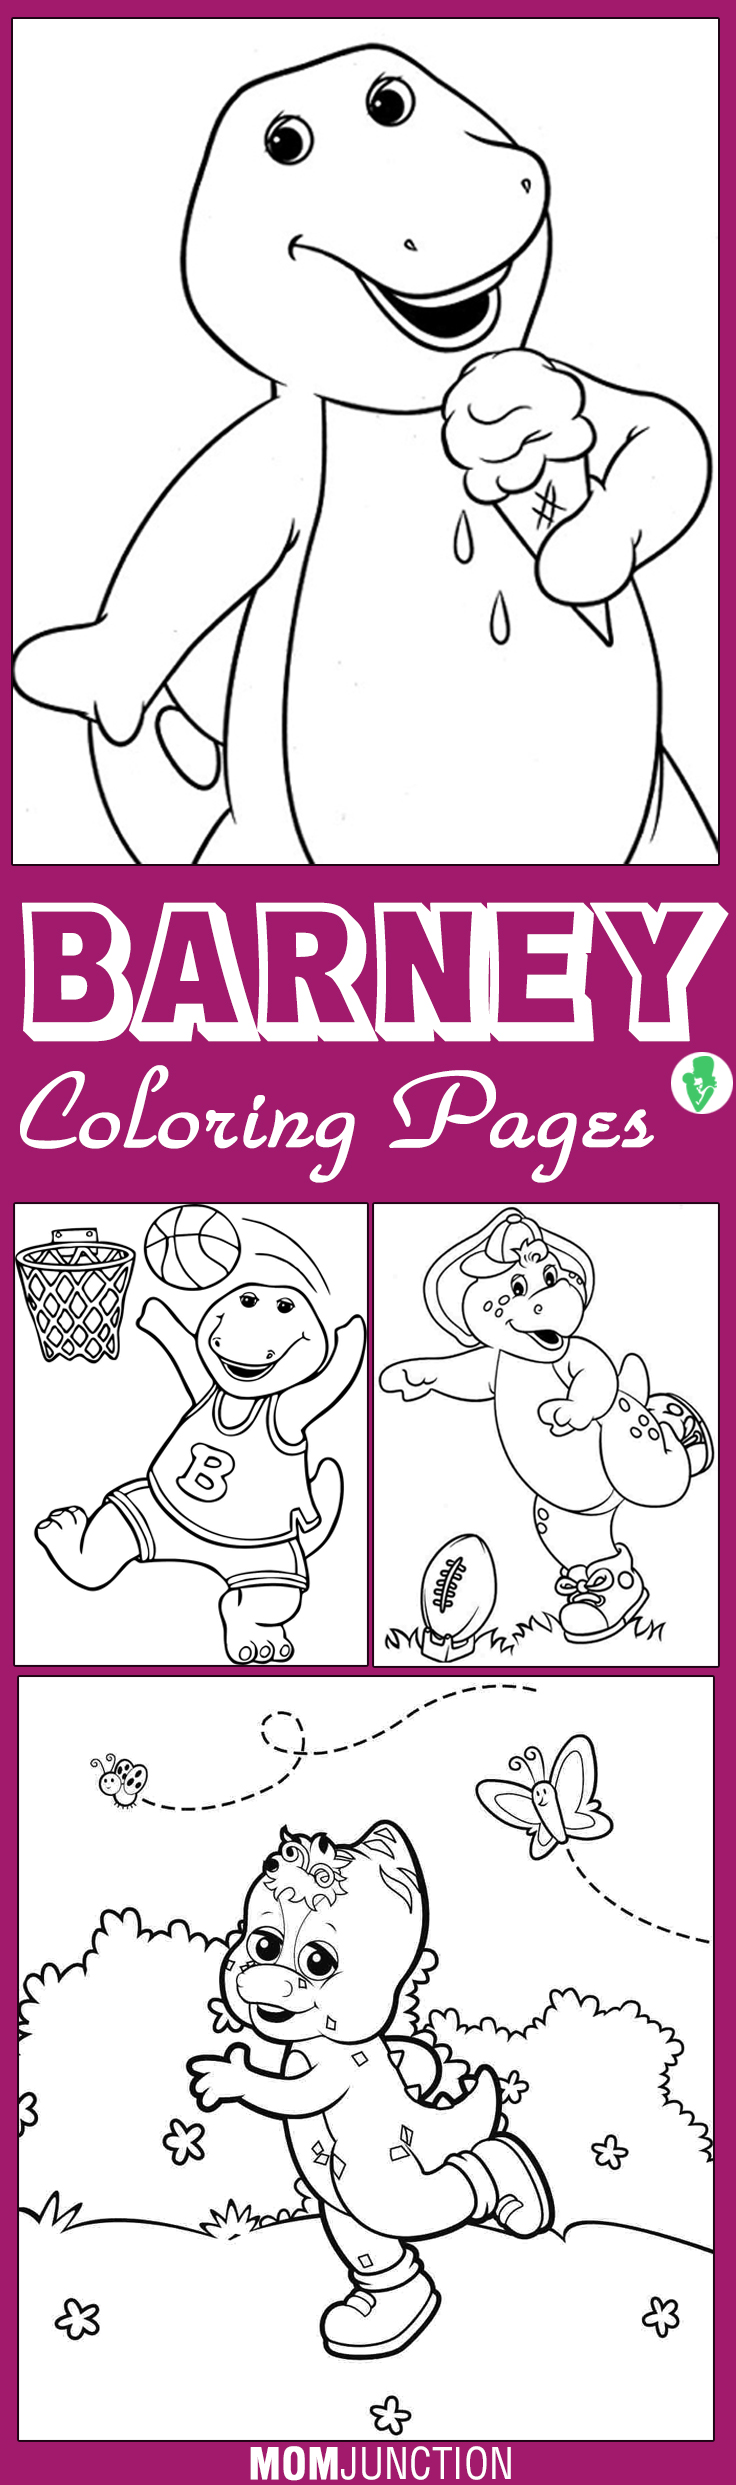 Coloring pages barney printable - Coloring Pages Barney Printable 25